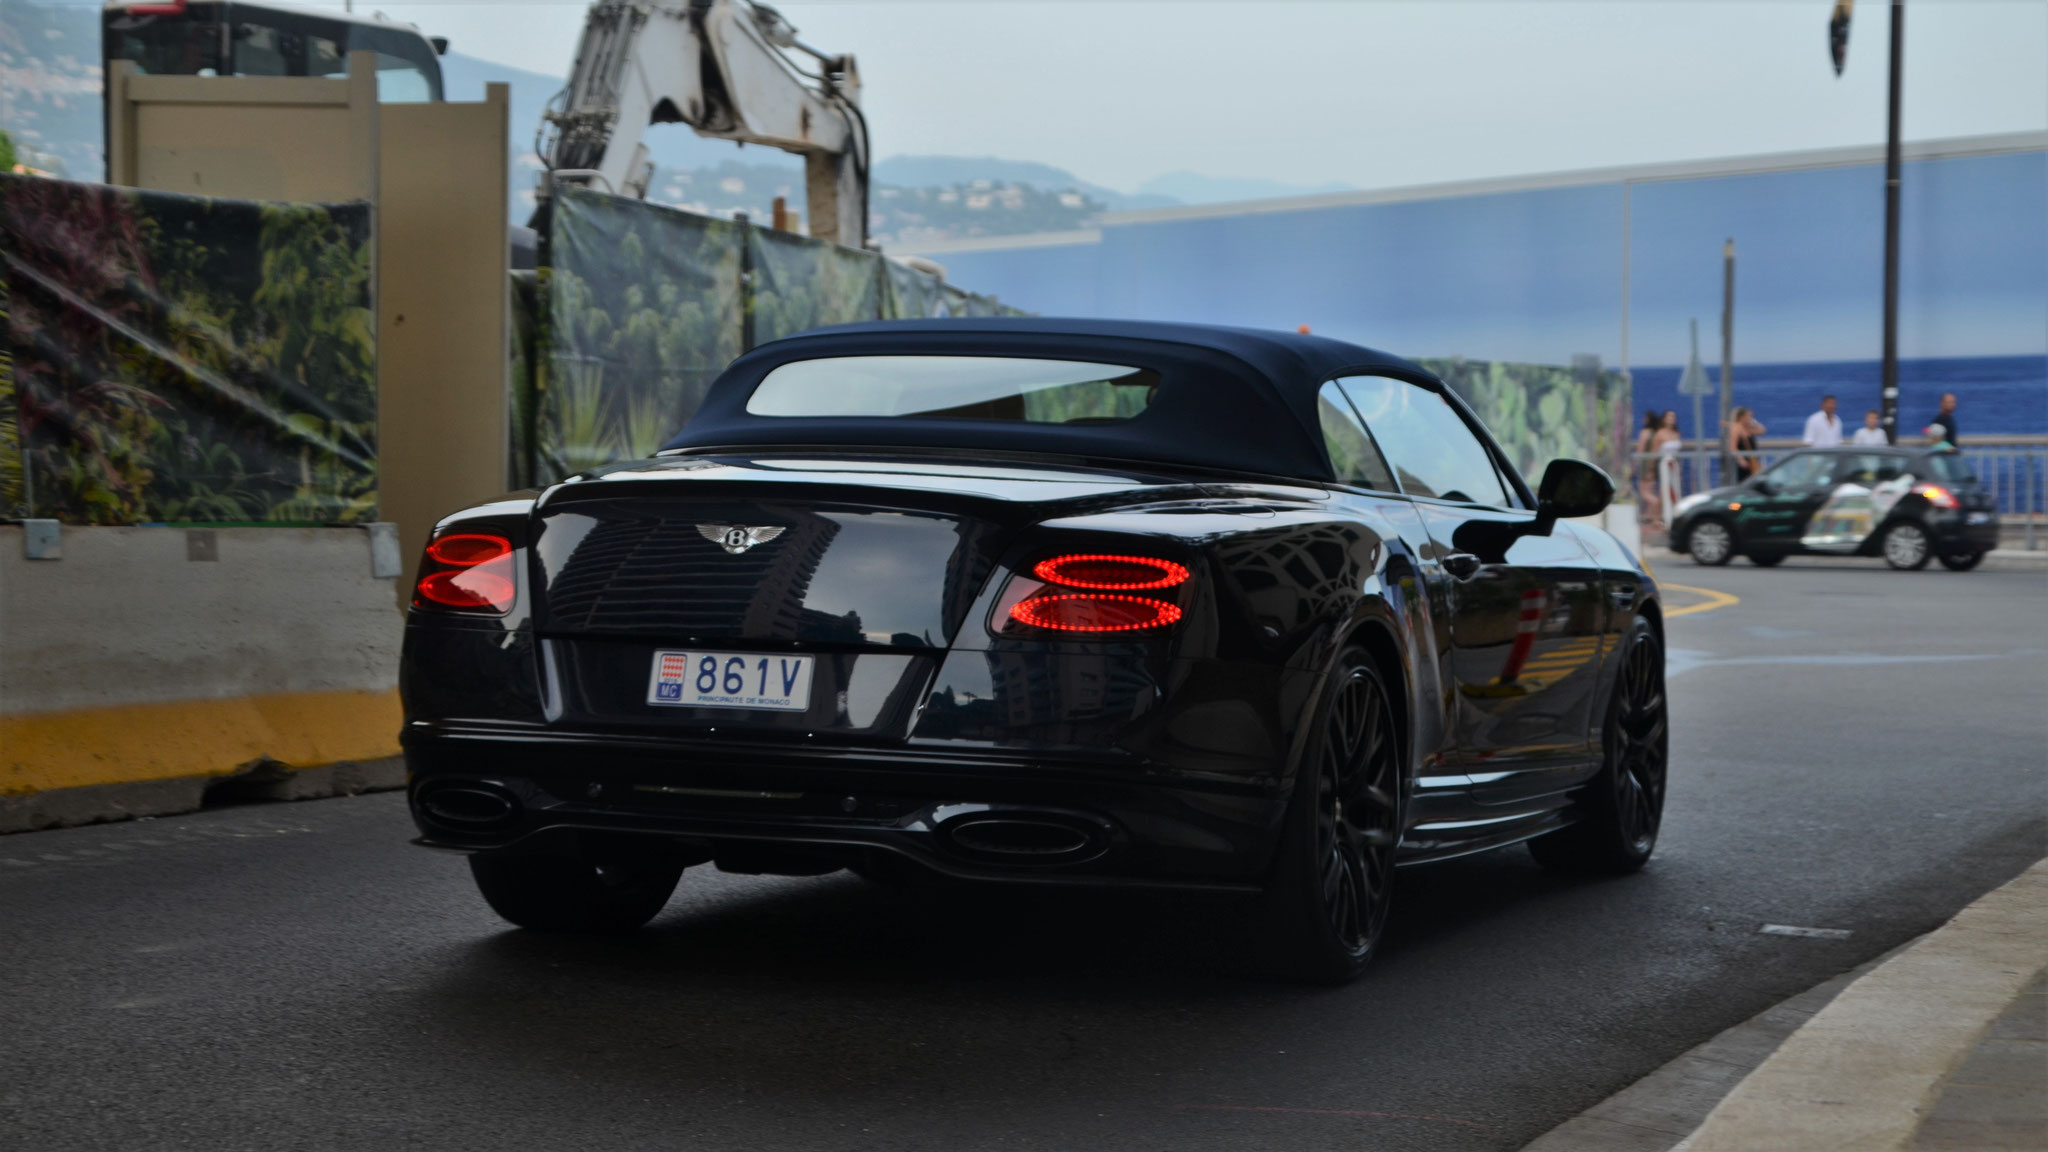 Bentley Continental GTC Supersports - 861V (MC)